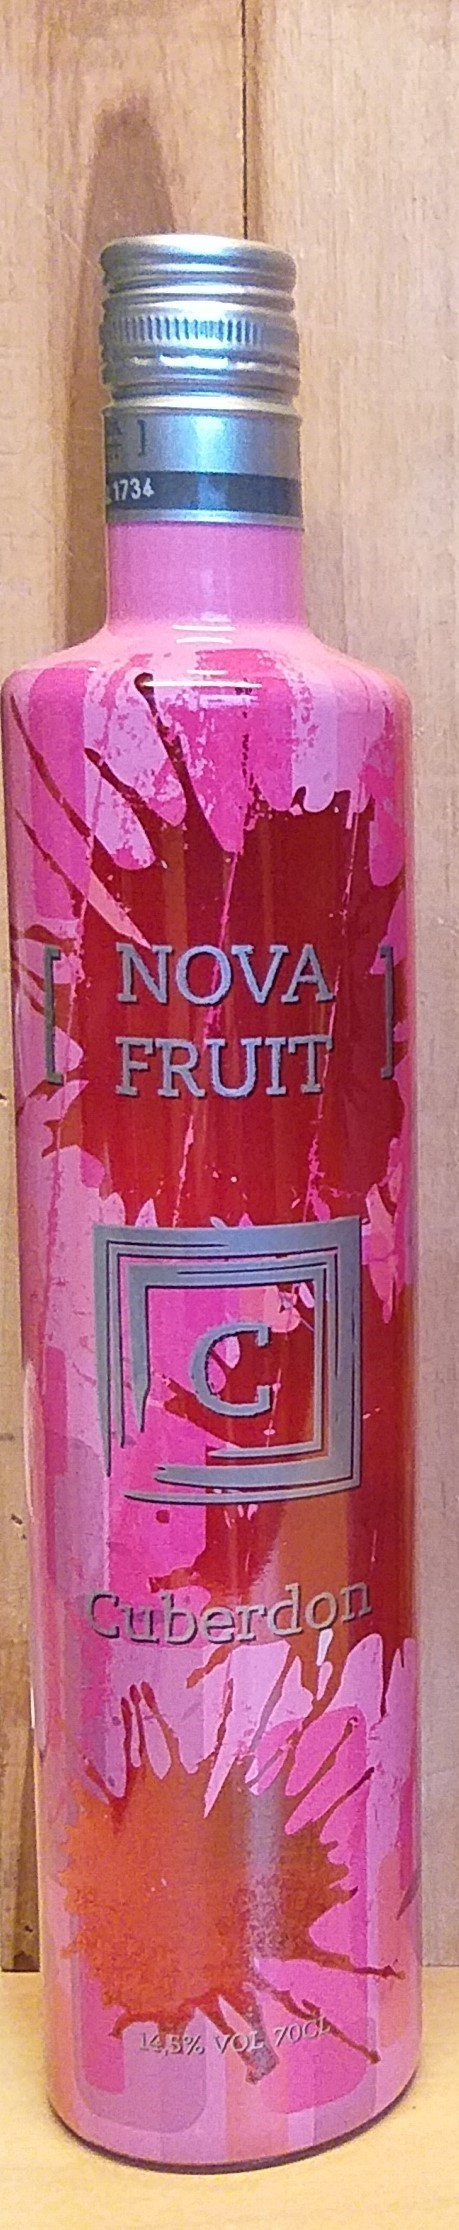 "Nova Fruit "" Cuberdon """